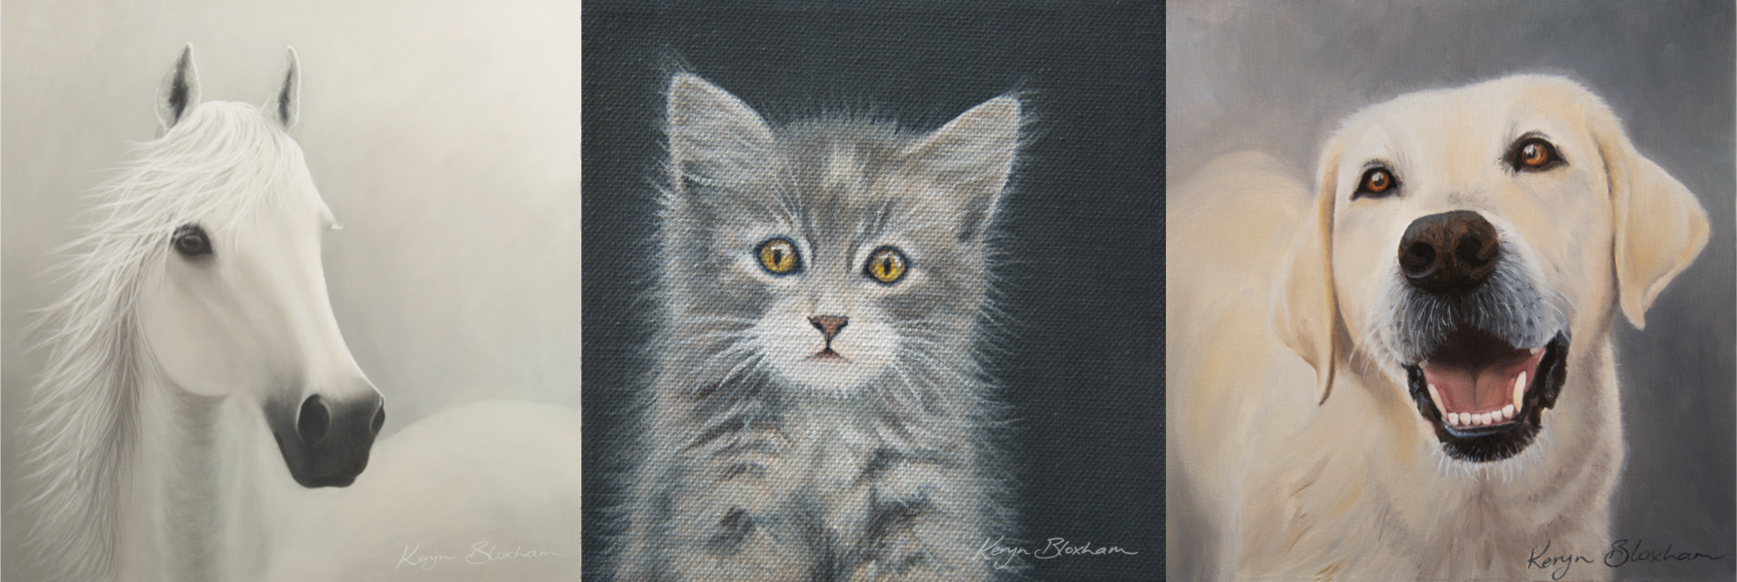 New! Pet Portraits - Click here to find out more about commissioning an original artwork today!